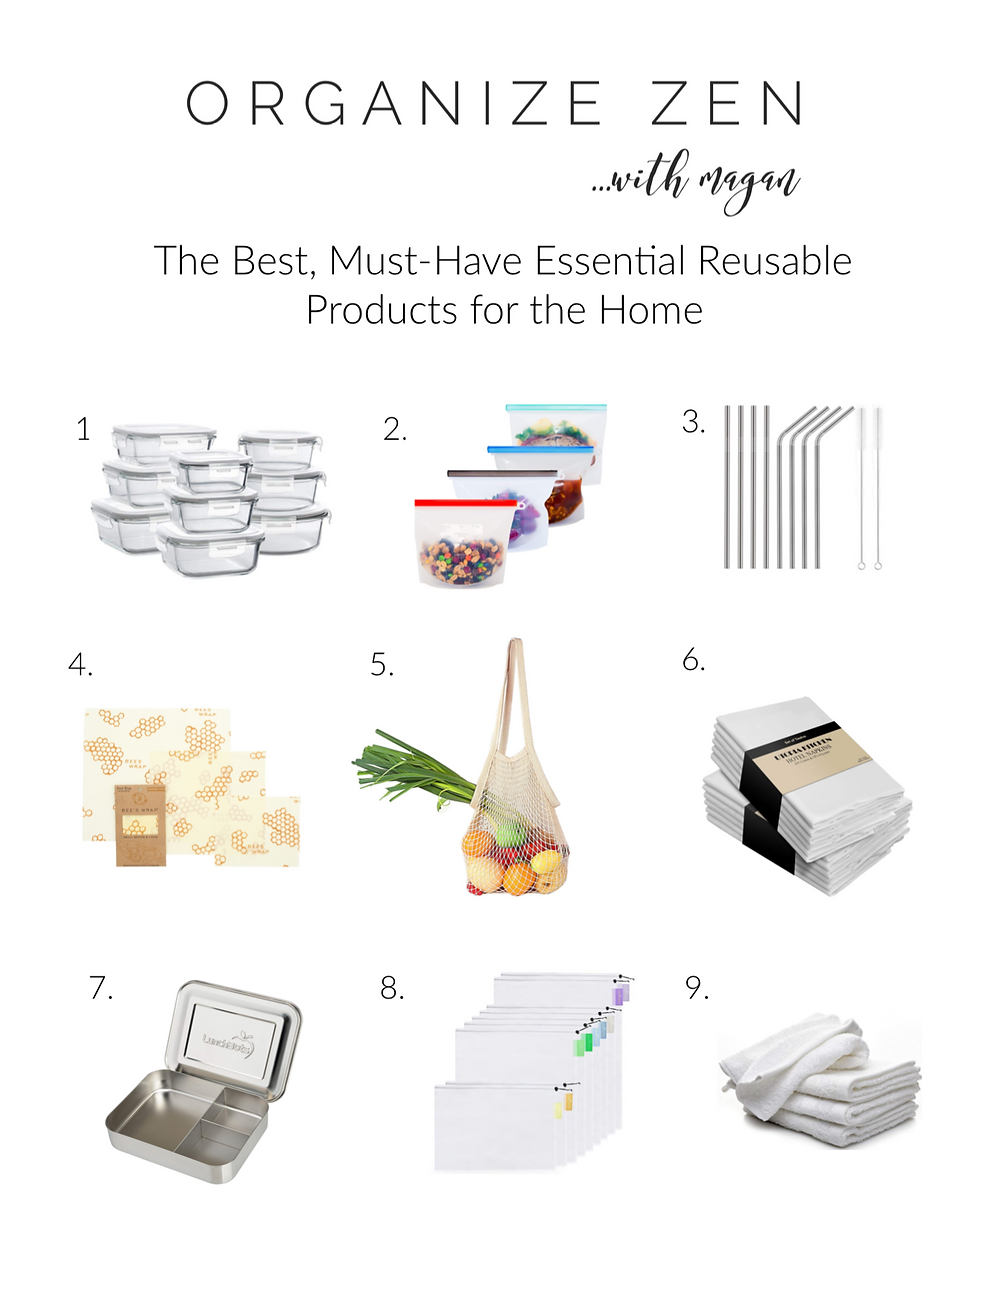 Top 9 Eco-Friendly Zero Waste Reusable Kitchen Products